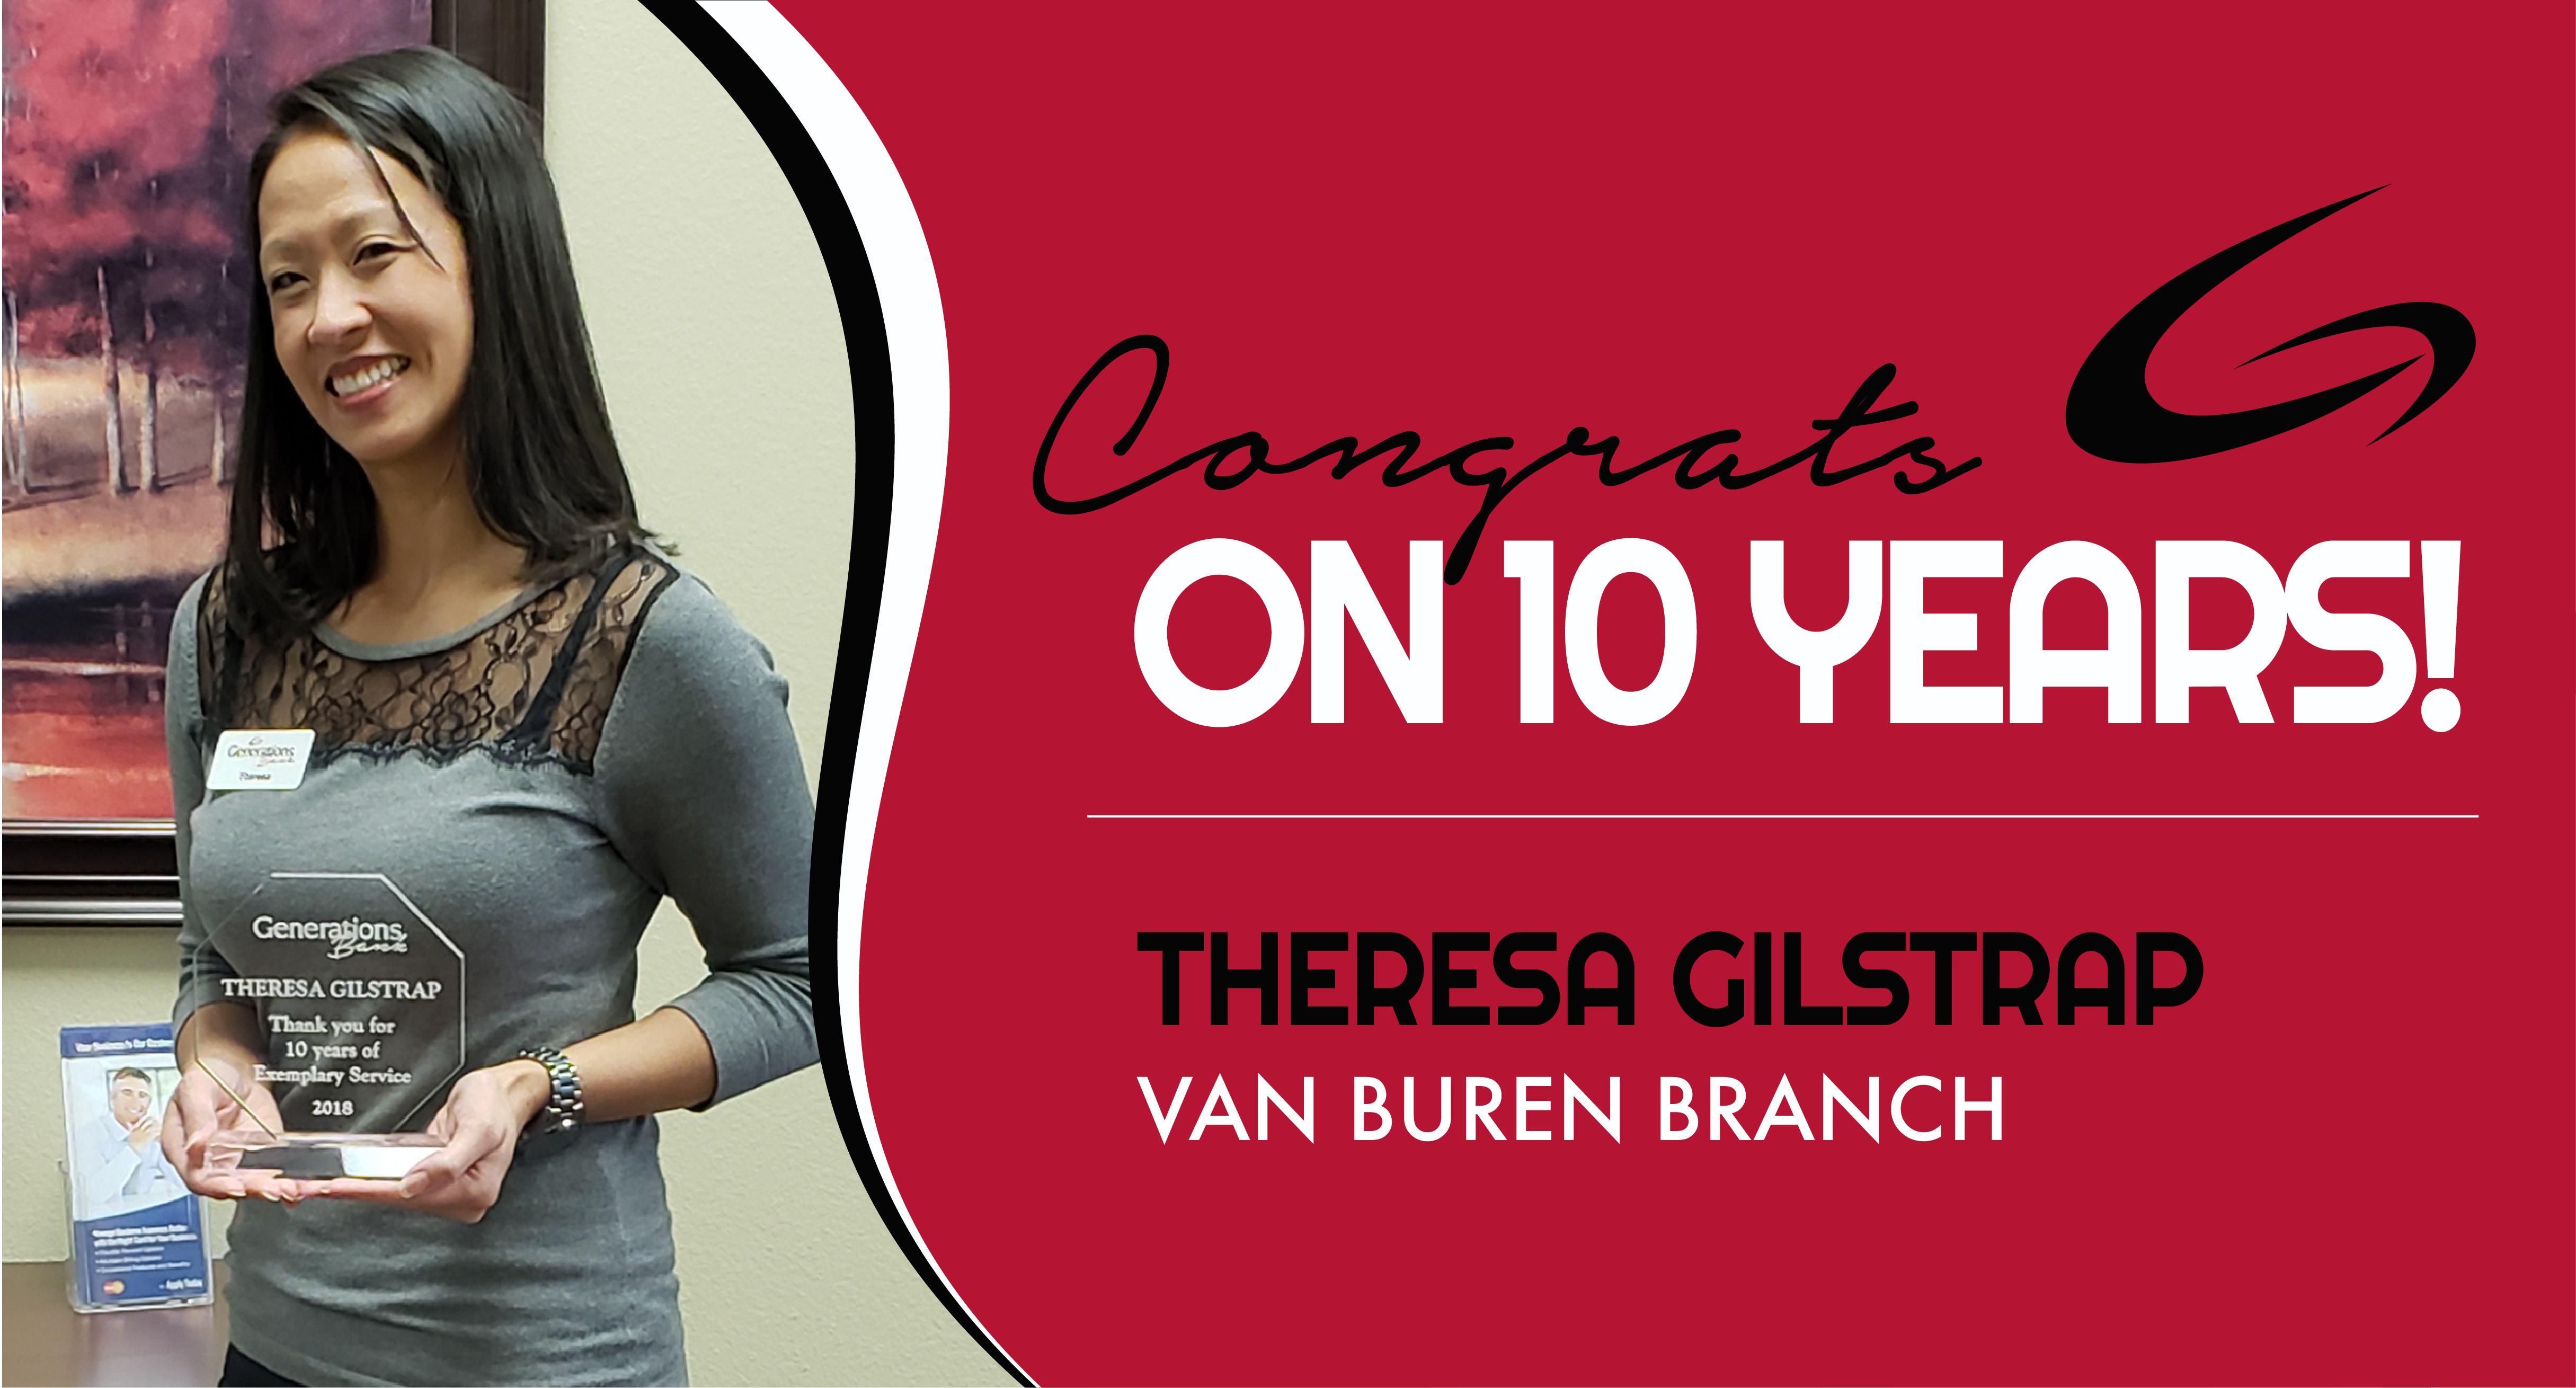 Congratulations Theresa Gilstrap on 10 Years!